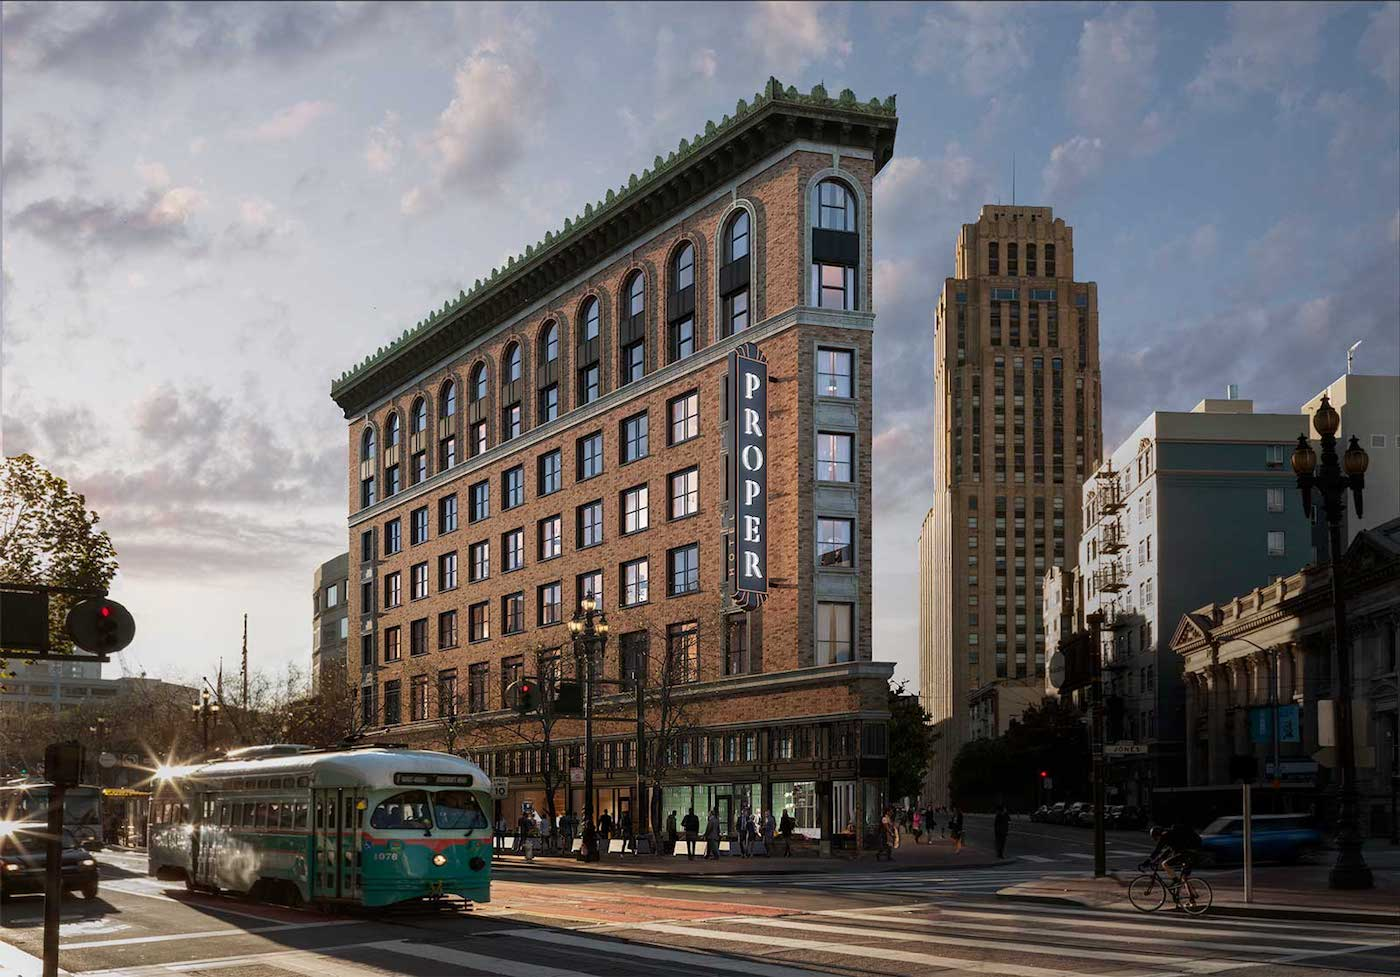 Prodigious! Stylish Proper Hotel Brings Rooftop Lounge To Market Street